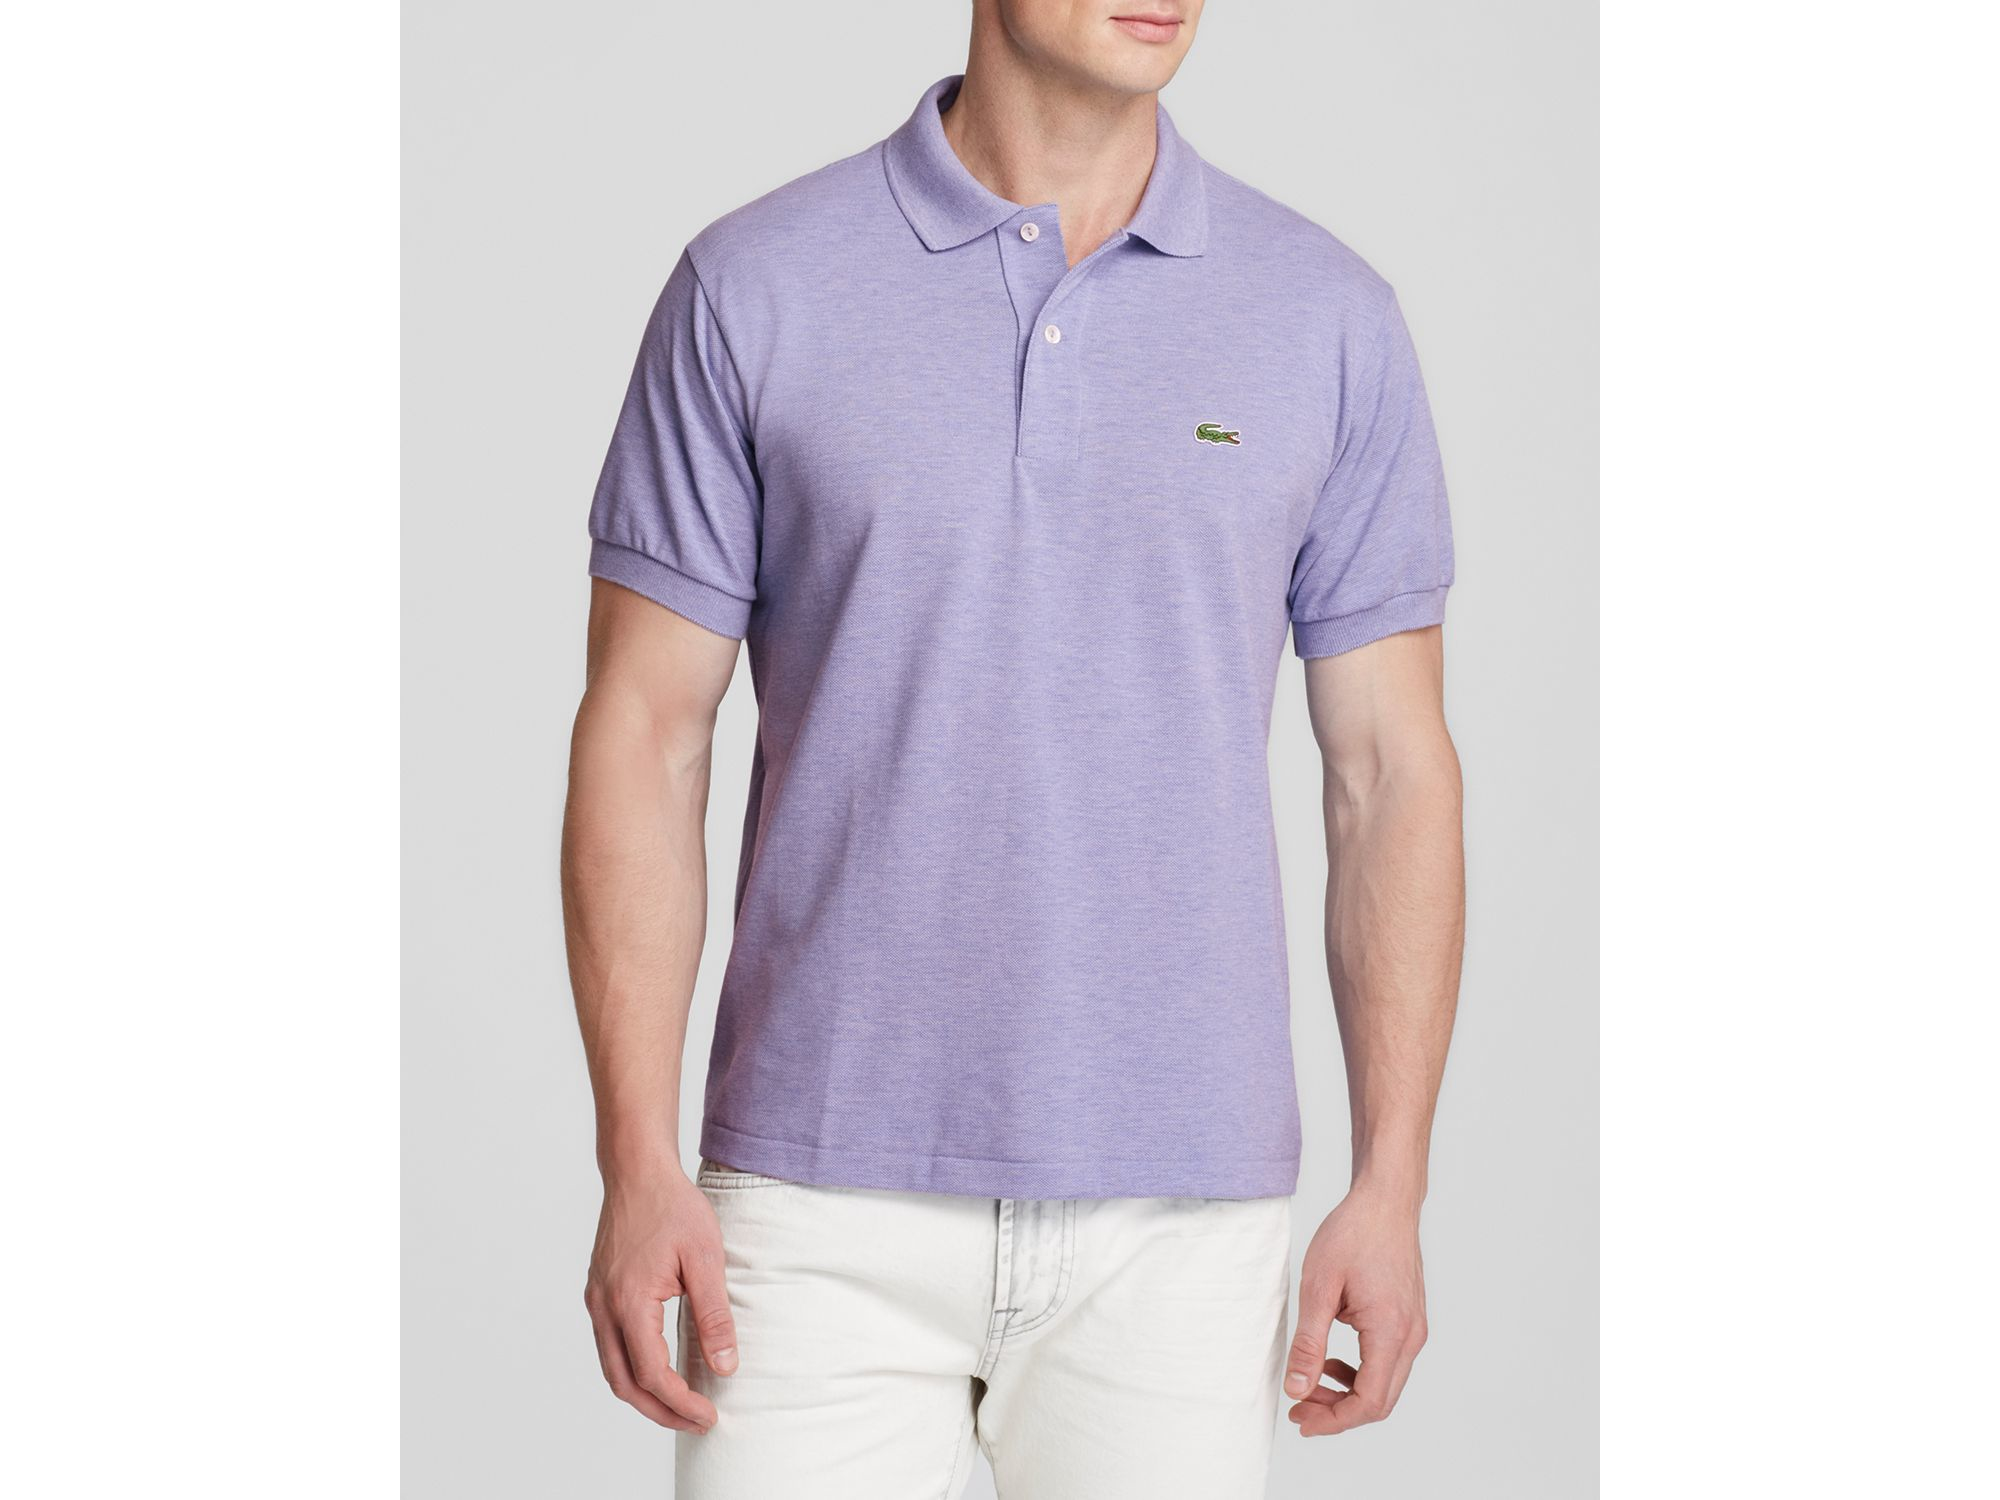 1e6e695d7 Lacoste Short Sleeve Pique Polo Shirt - Classic Fit in Purple for ...